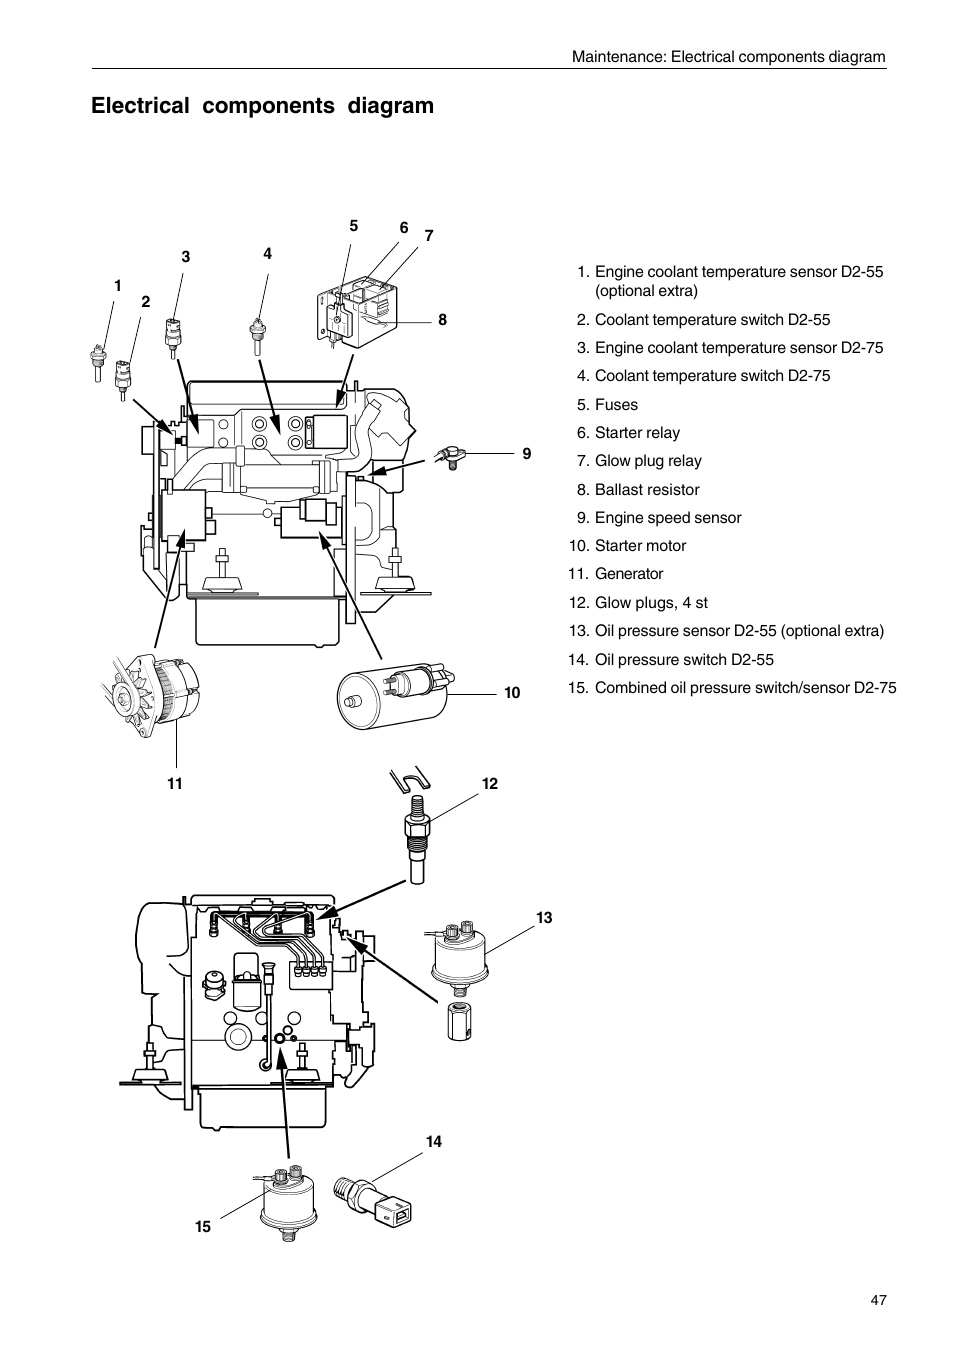 hight resolution of electrical components diagram volvo penta d2 75 user manual page 49 68